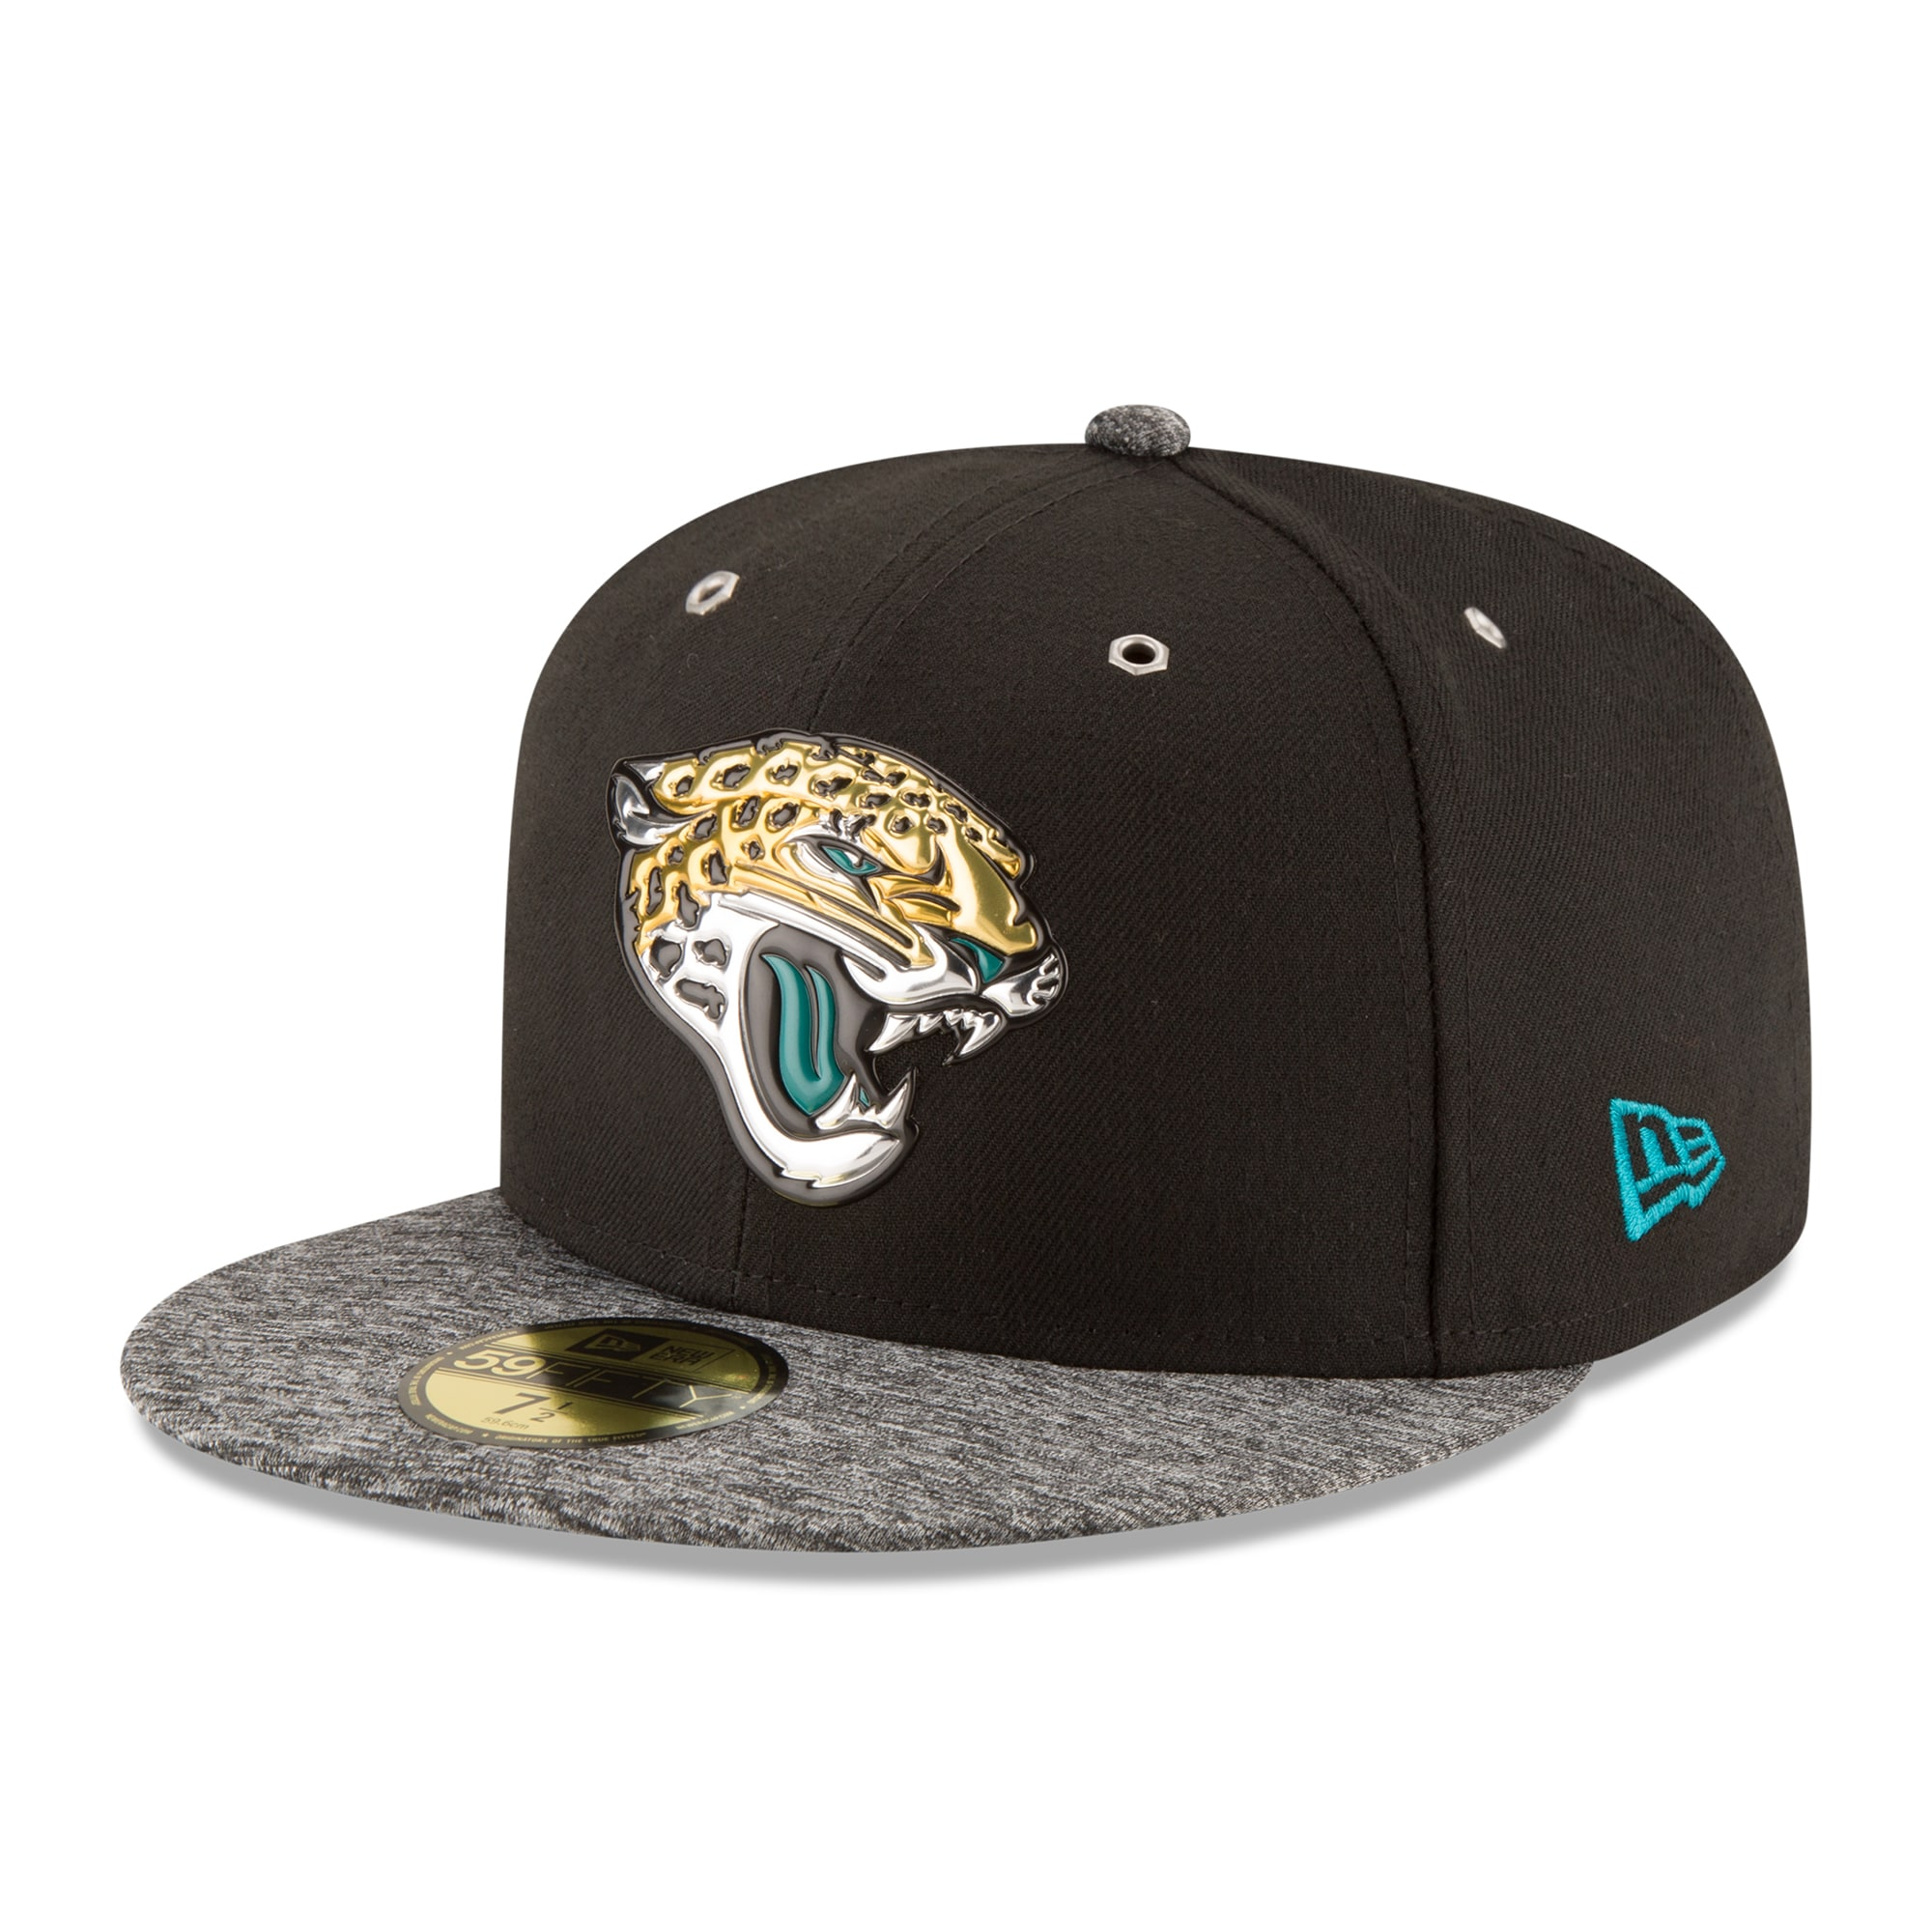 Jacksonville Jaguars New Era On Stage 59FIFTY Fitted Hat - Black